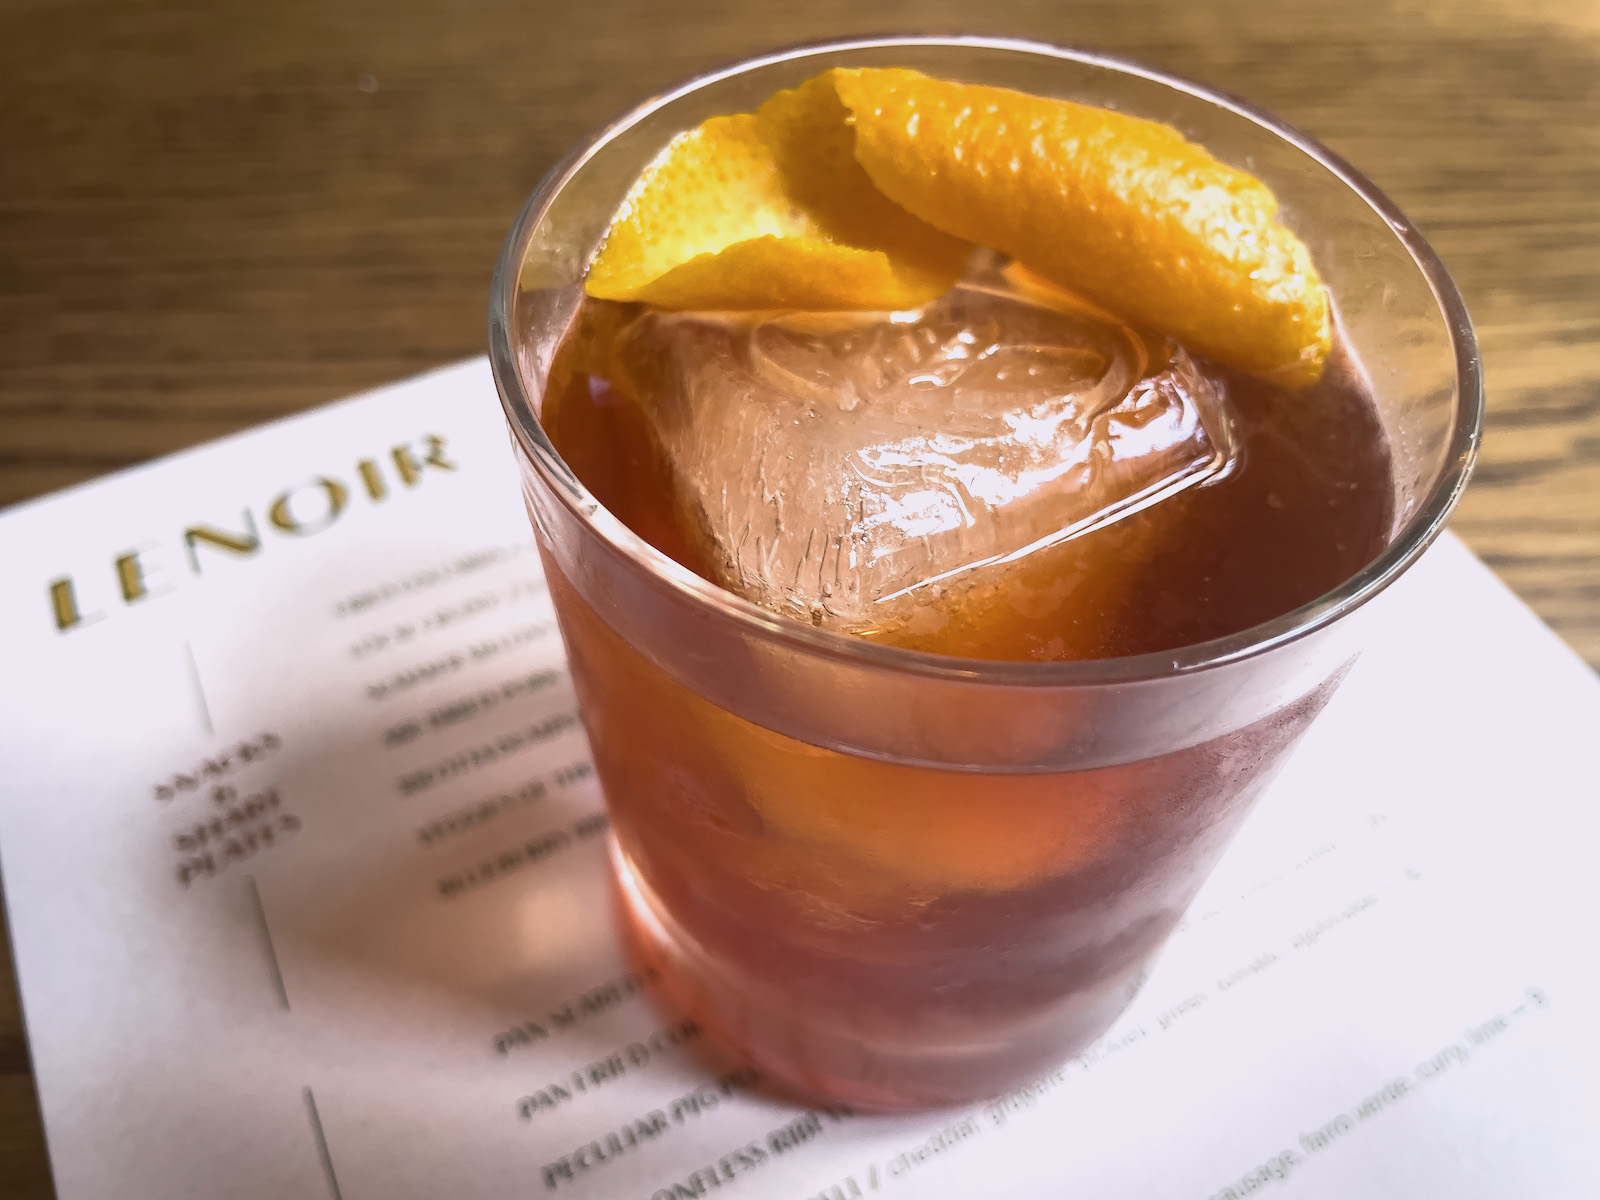 The Short Rows at Lenoir in Charleston gets a local bitter touch from High Wire Southern Amaro